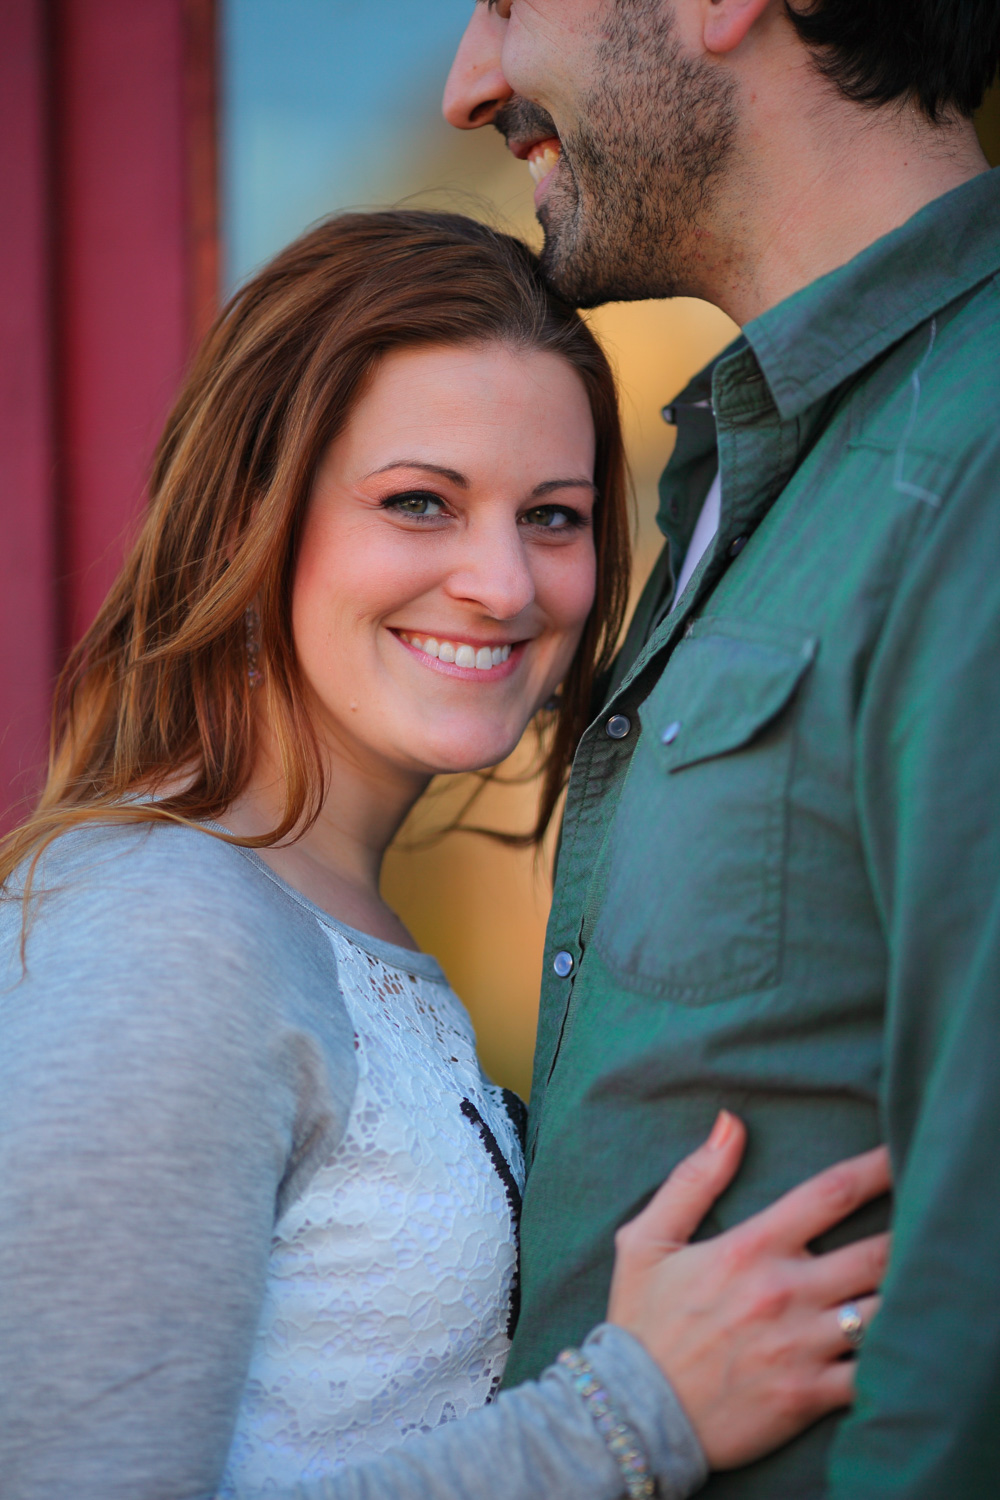 Engagement+Photos+Snohomish+Washington02.jpg